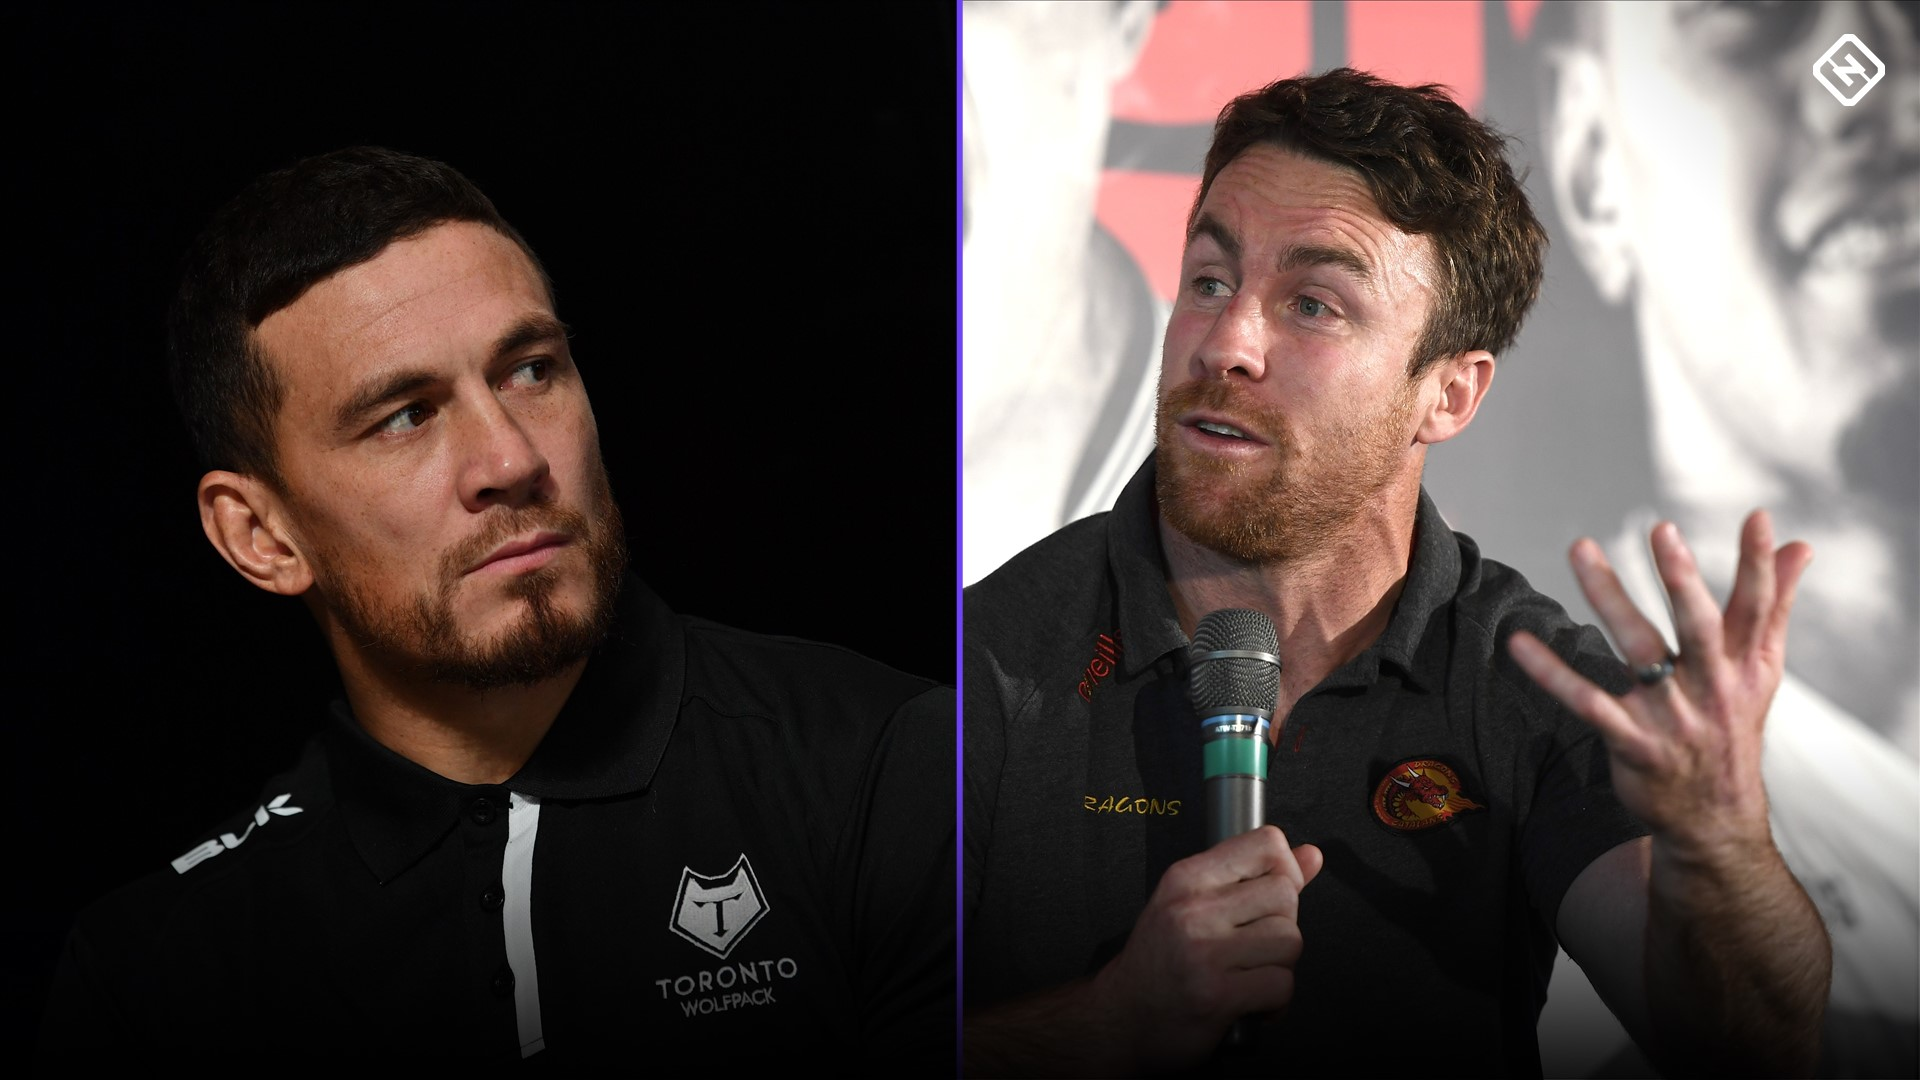 James Maloney hammers Sonny Bill-Williams with brutal sledge on eve of Super League season